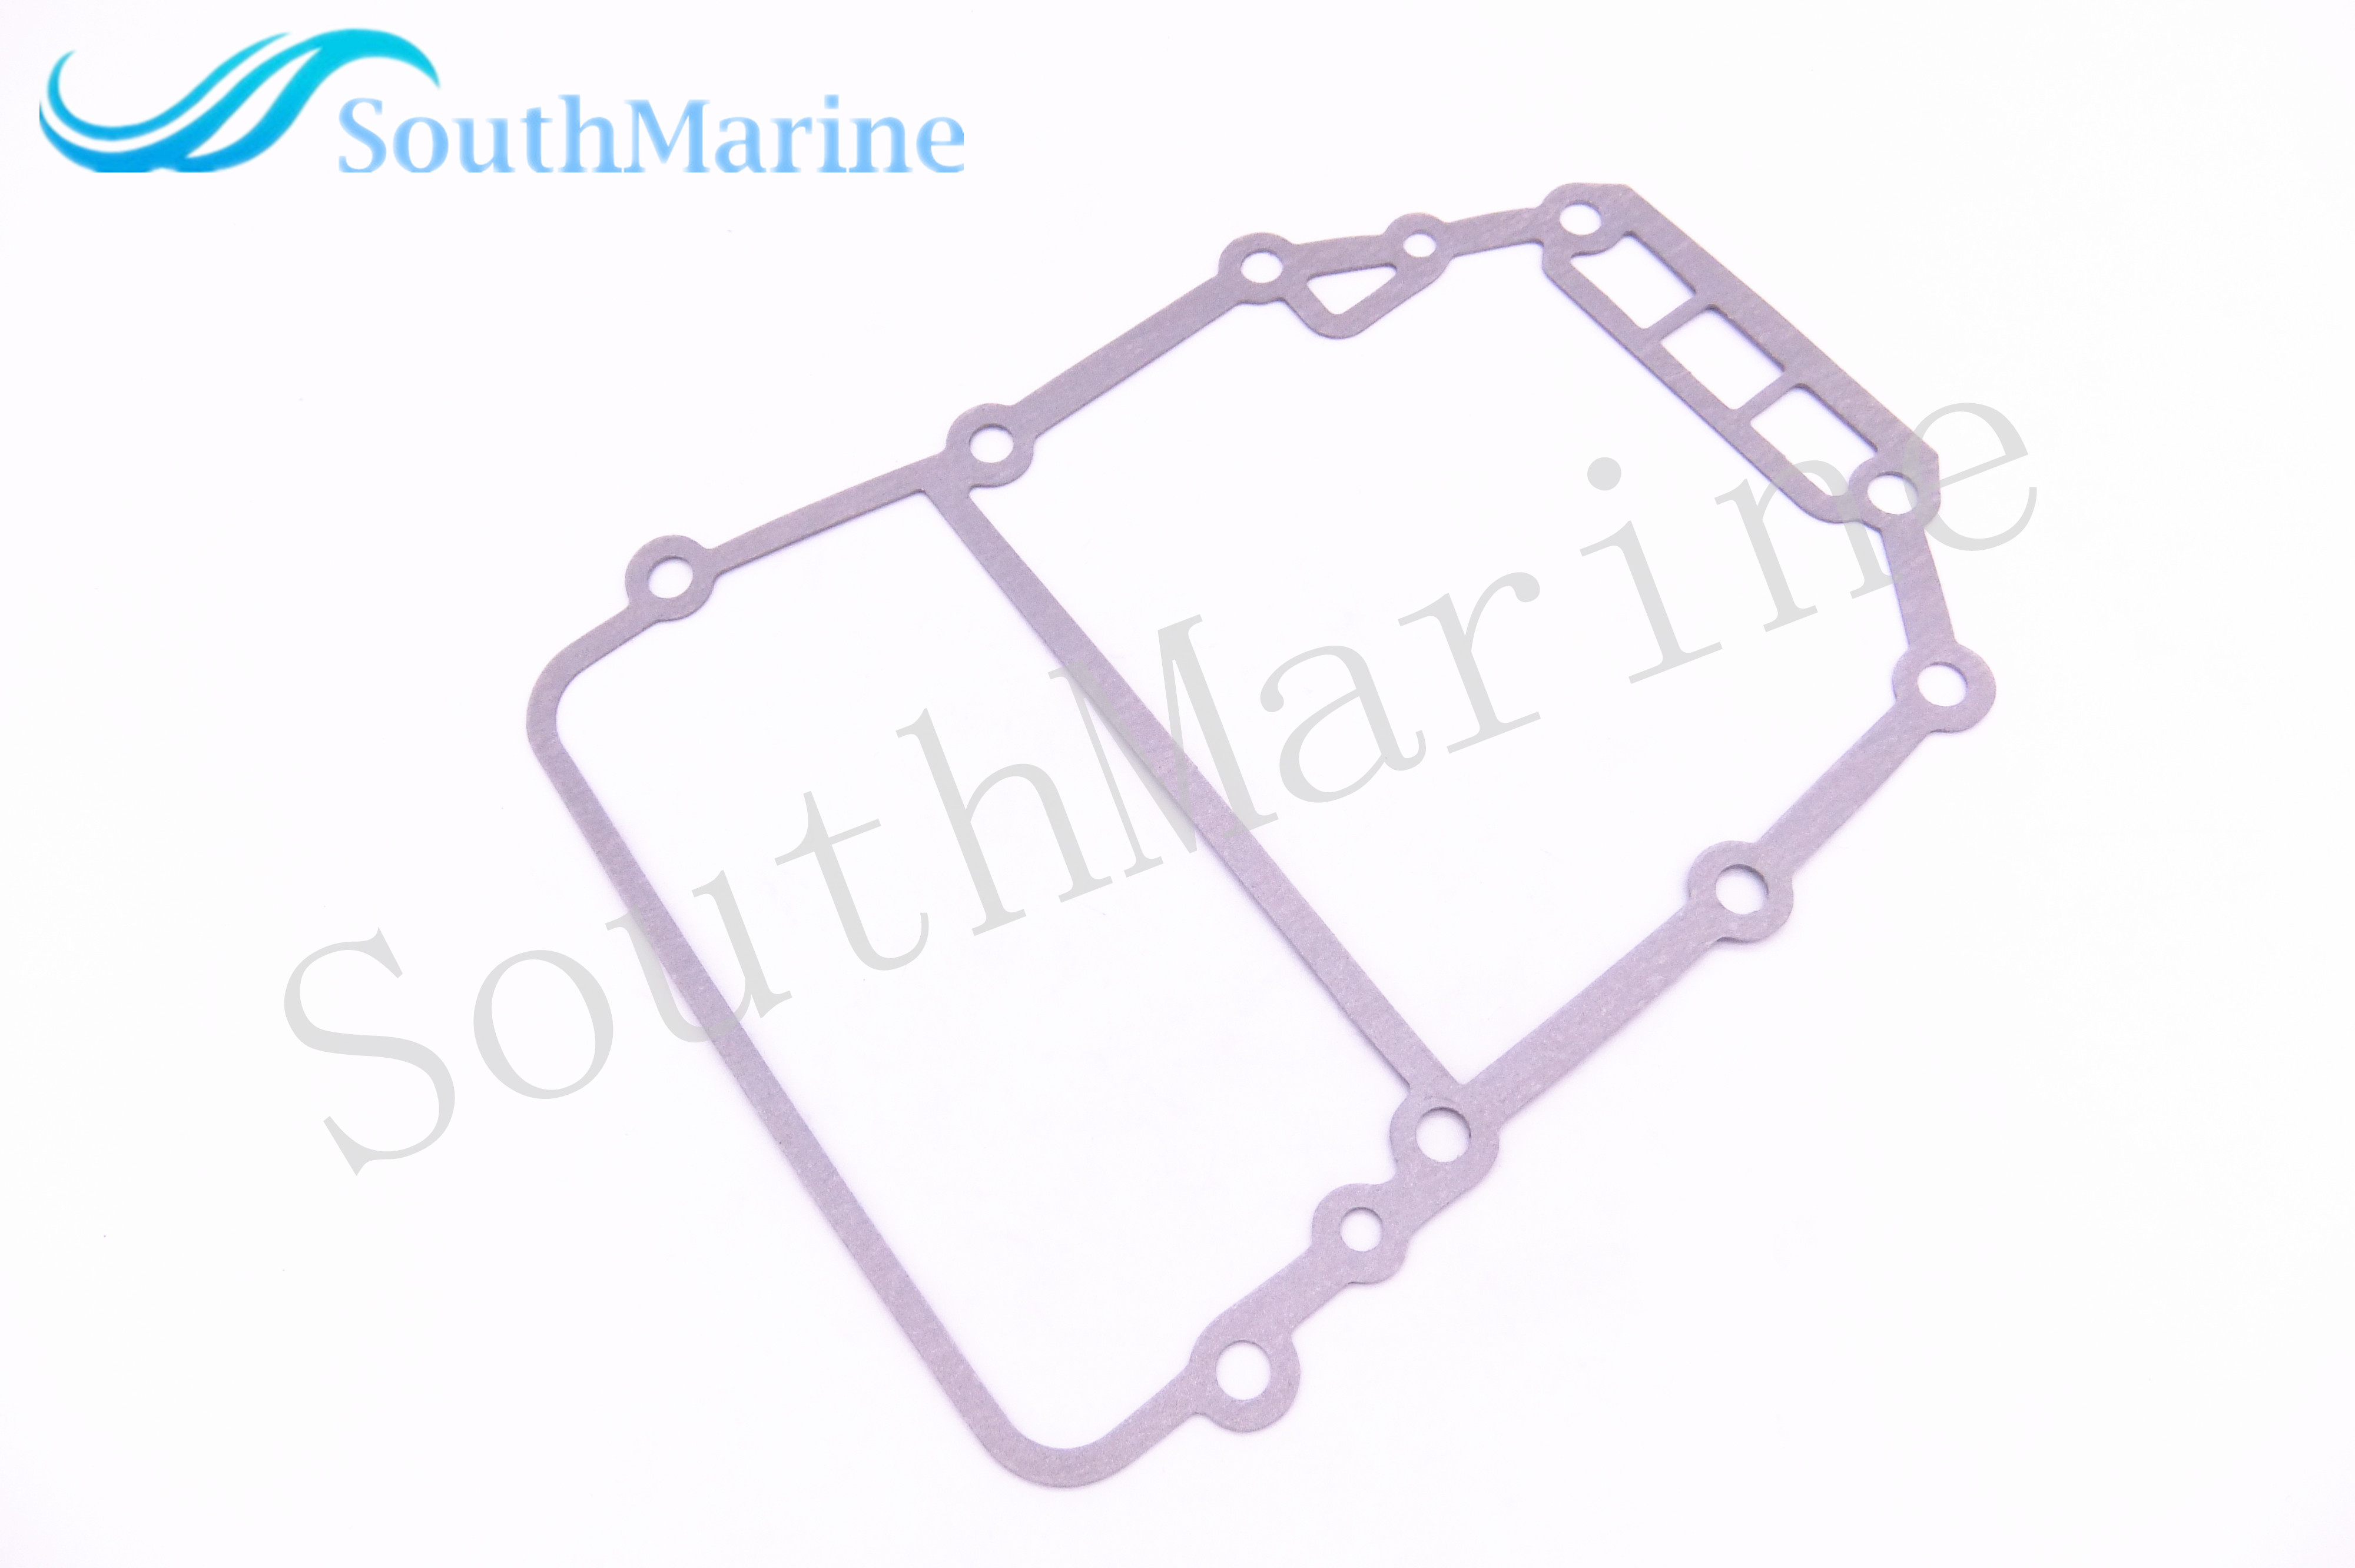 hight resolution of outboard engine 11434 94411 gasket under oil seal for suzuki 40hp dt40 dt40c boat motor in boat engine from automobiles motorcycles on aliexpress com